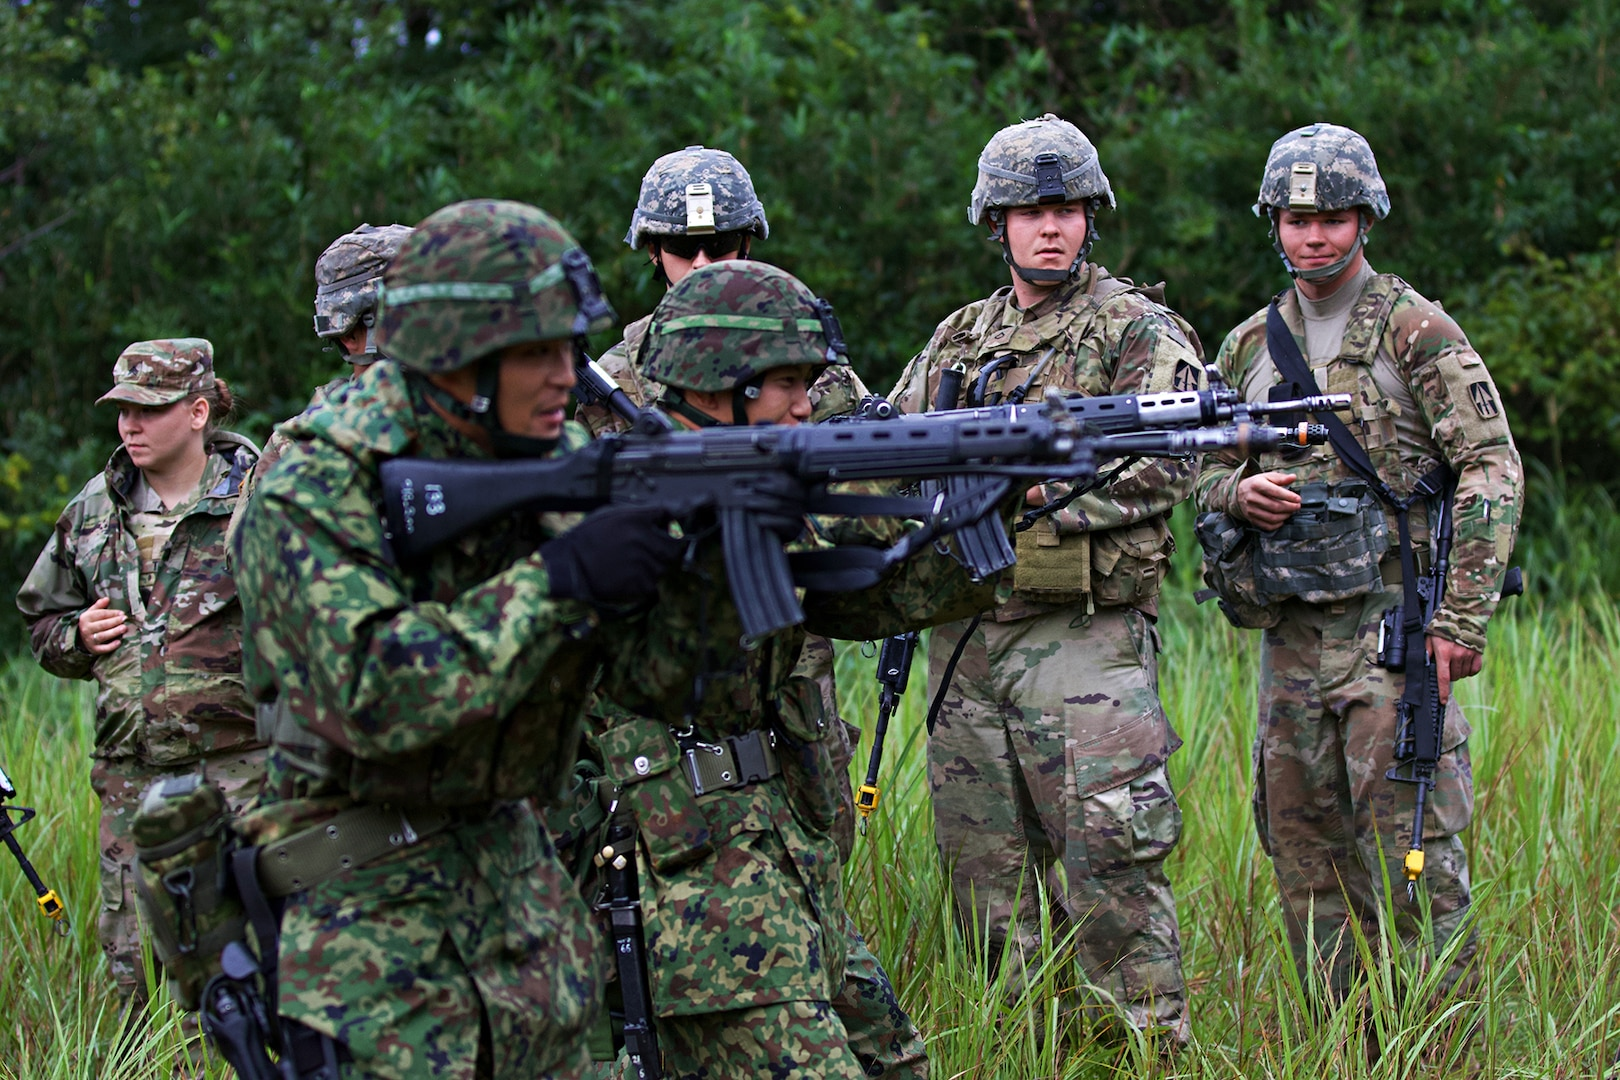 Japan and Indiana Guard forge alliance through live-fire exercises and disaster response